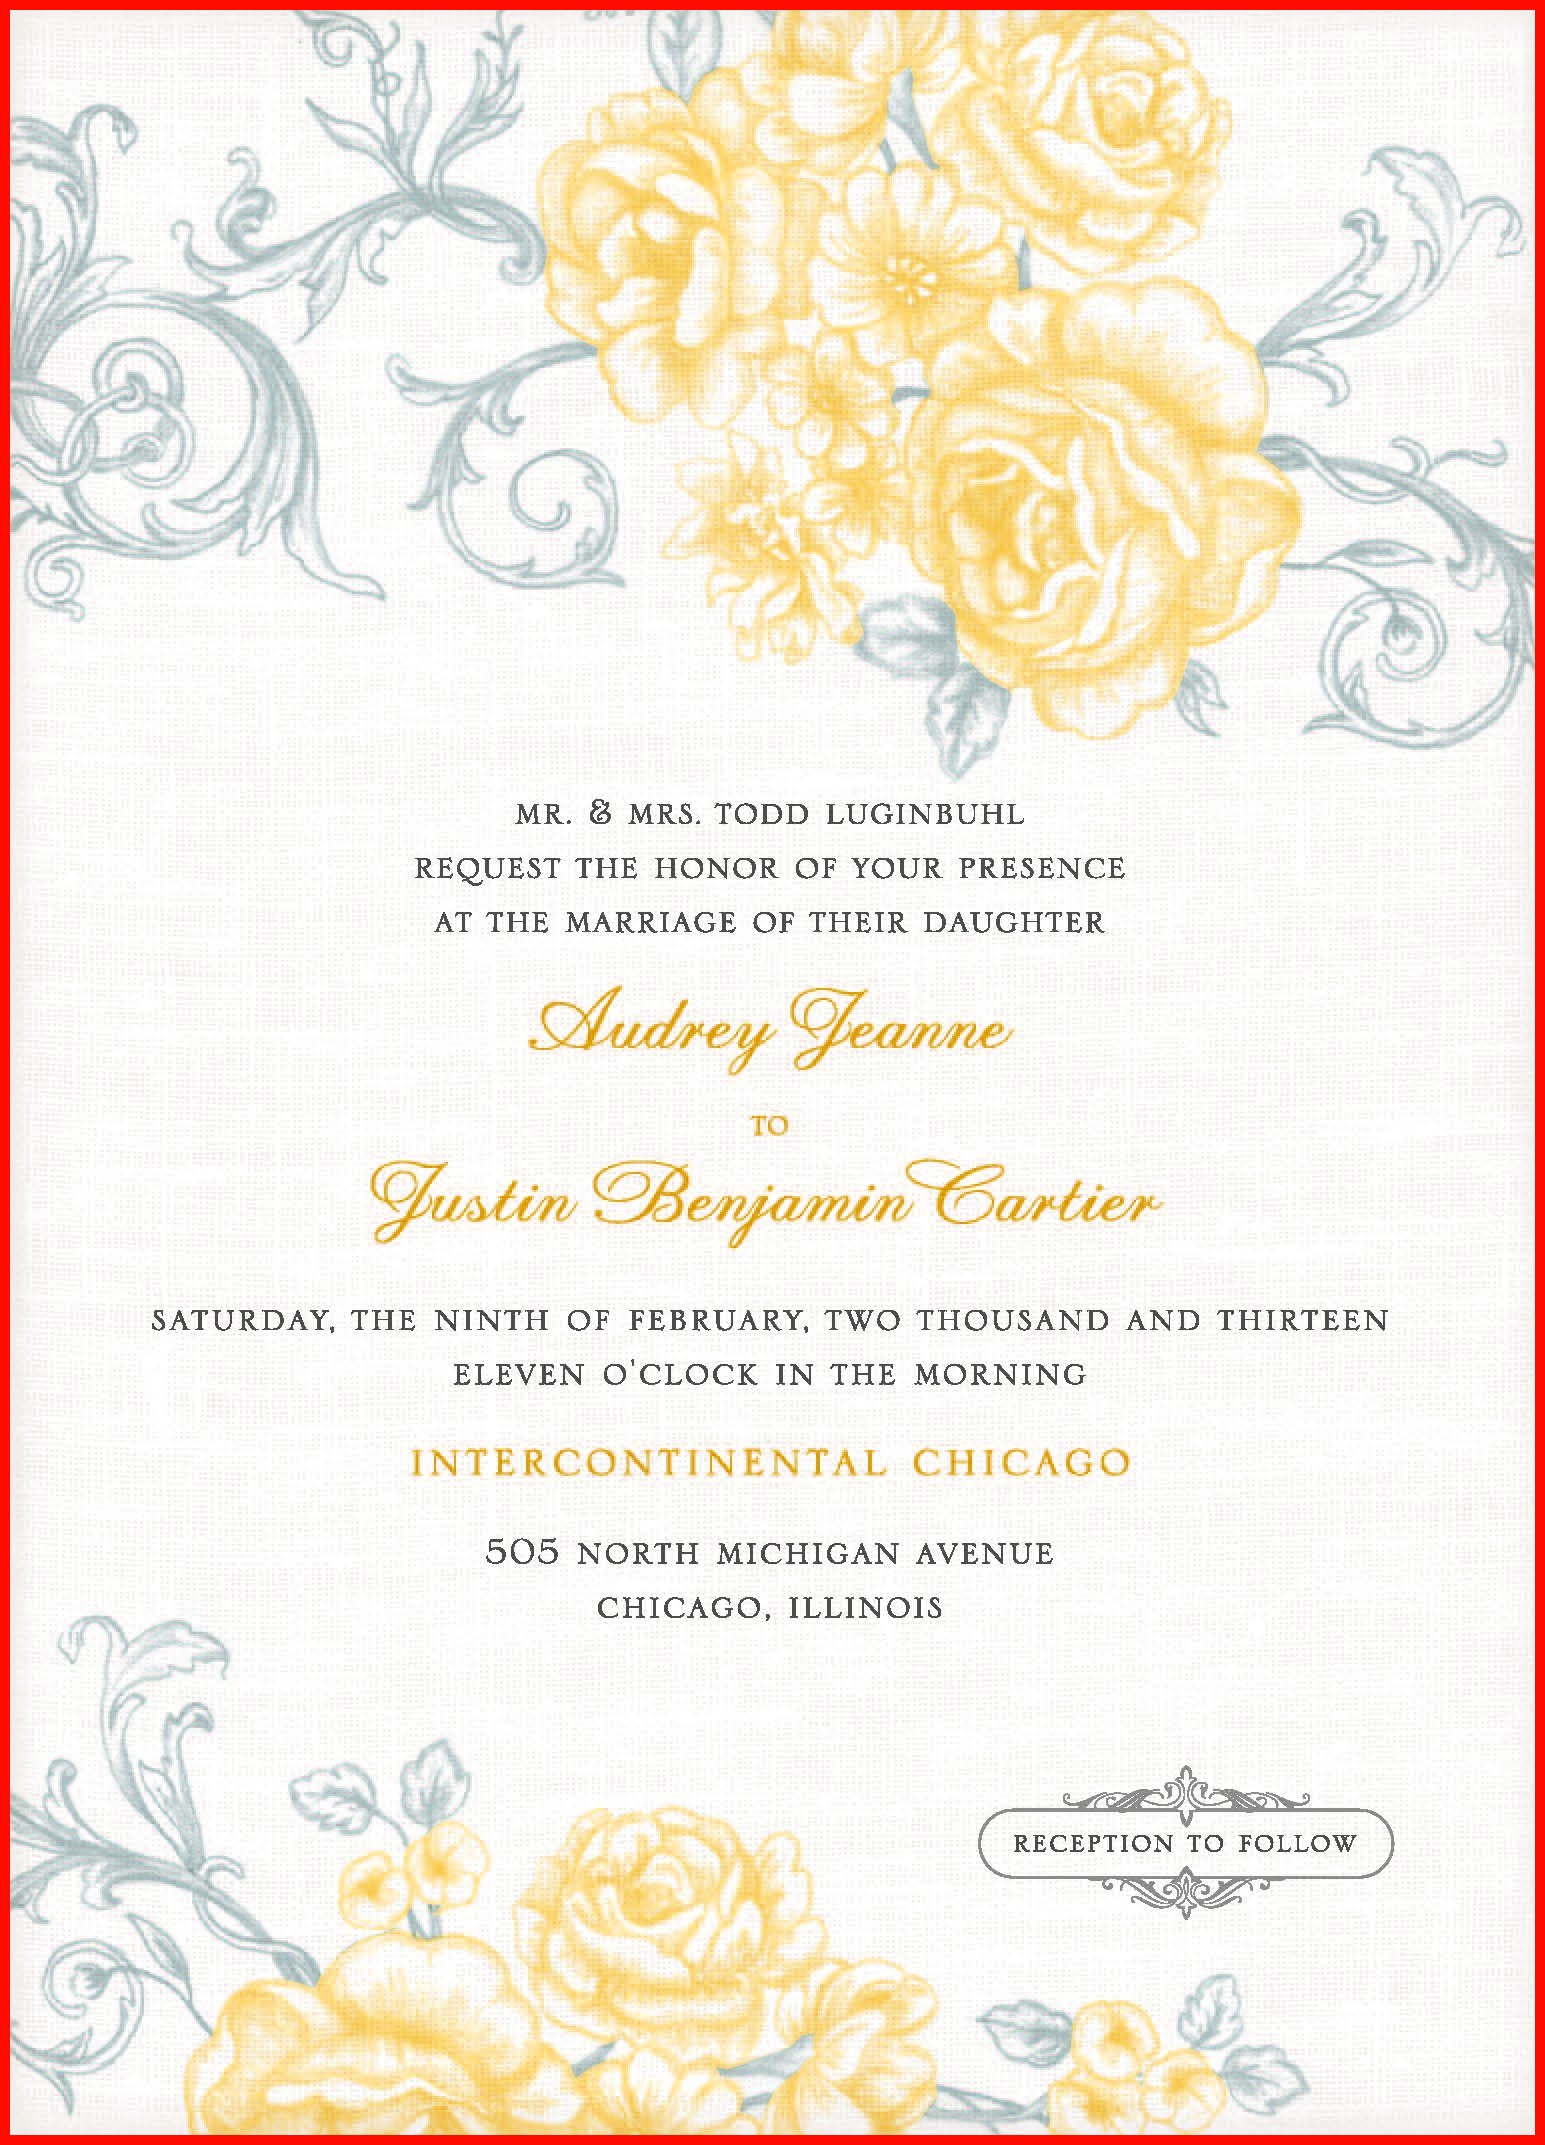 Best Of Free Dinner Invitation Templates For Word Image Of With Free Dinner Invitation Templates For Word